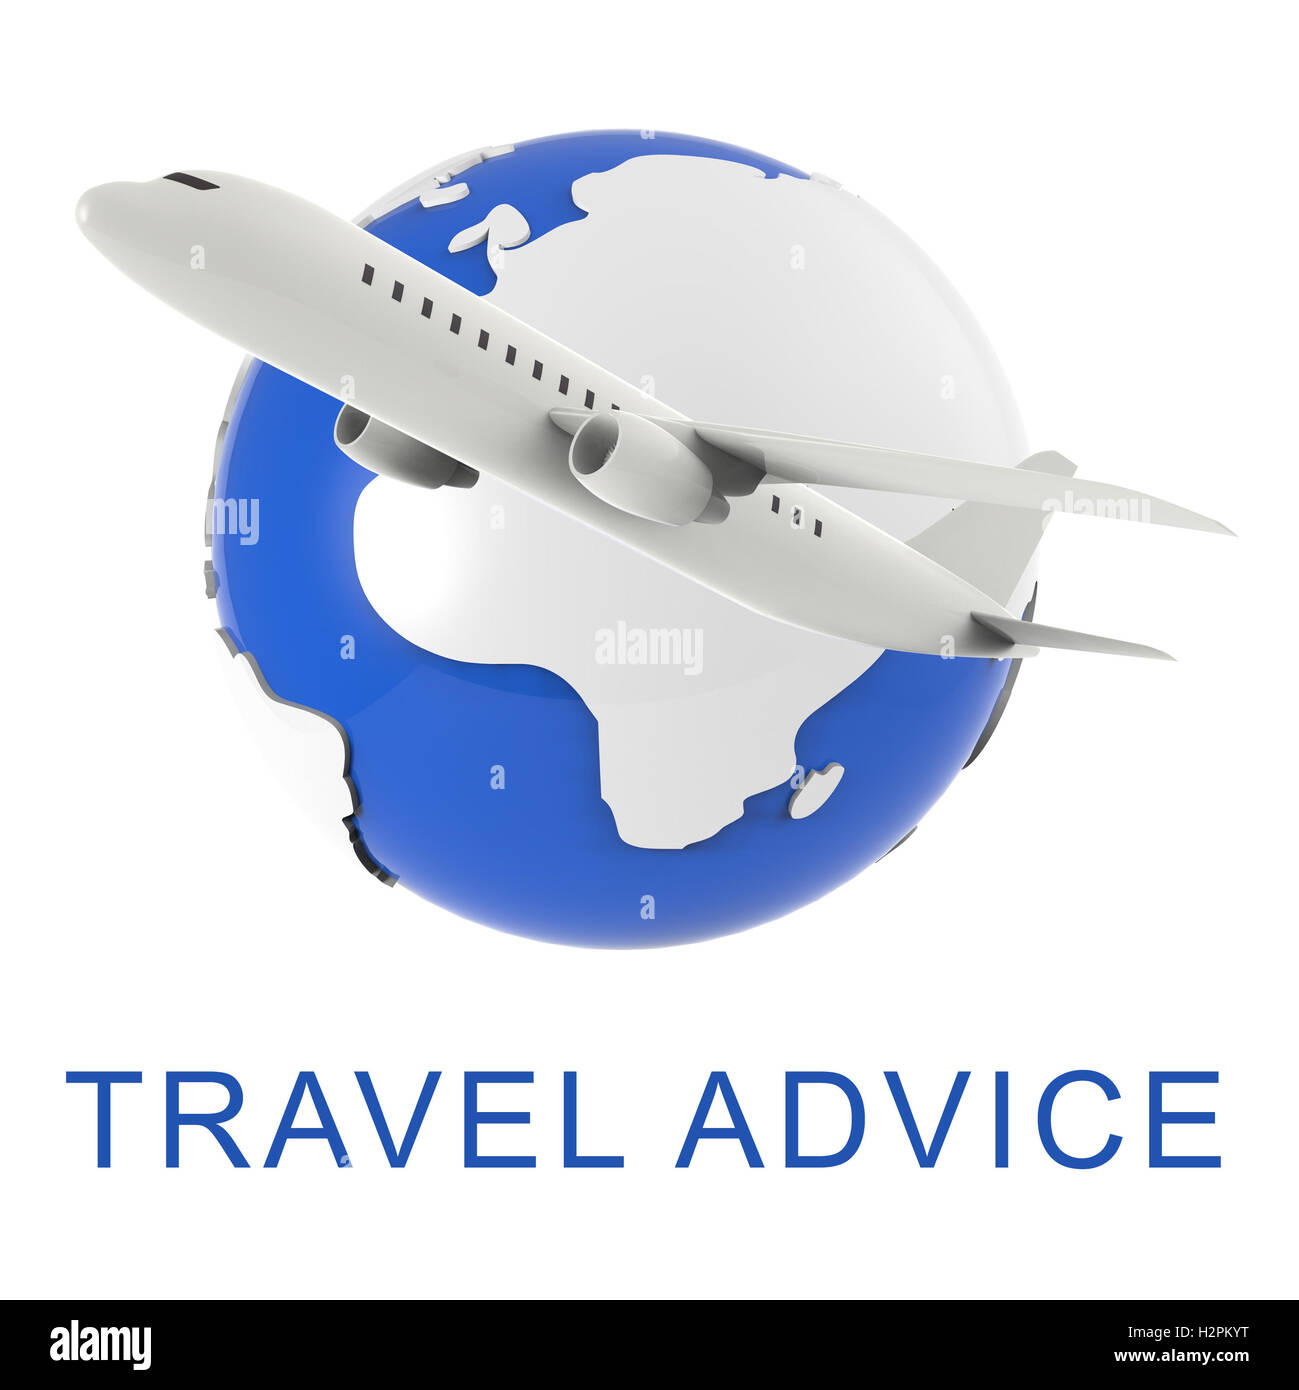 Travel Advice Globe And Plane Indicates Touring Guide 3d Rendering - Stock Image